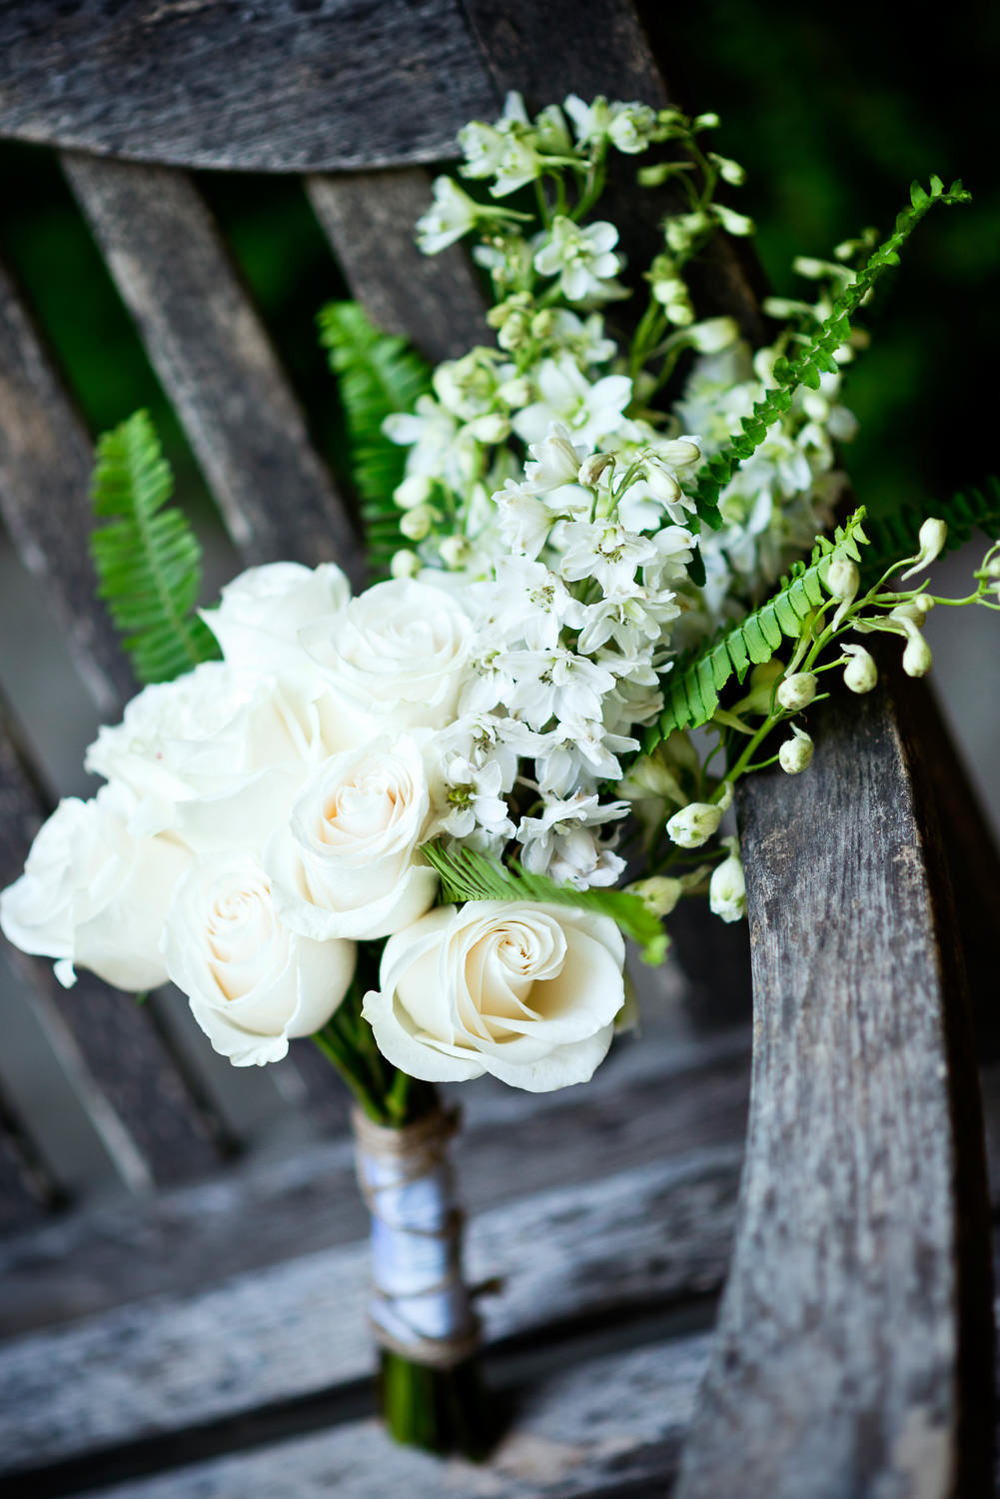 f27-photography-ventura-county-somis-hartley-botanica-wedding-bridal-bouquet-detail